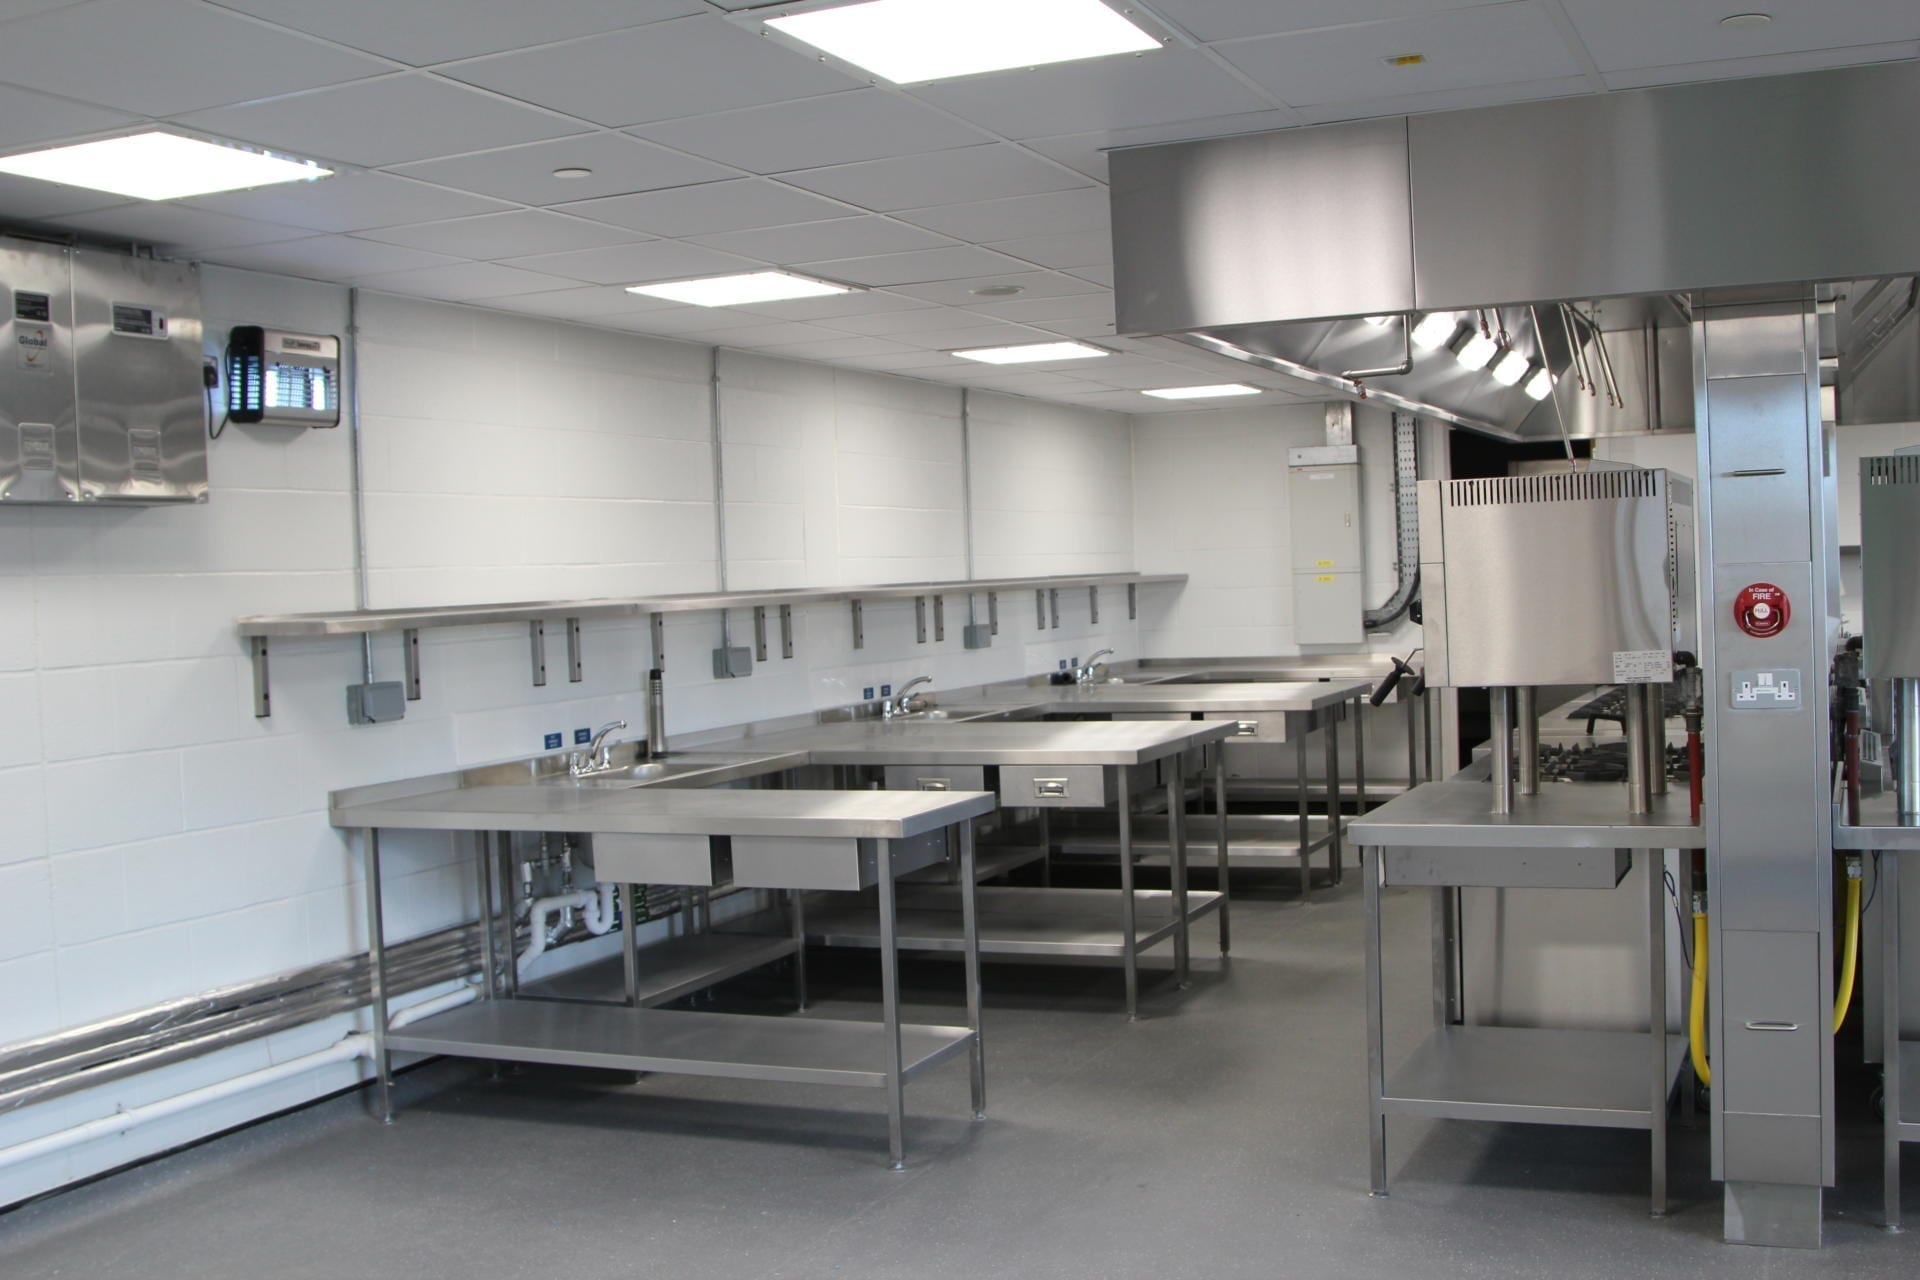 All_Saints_academy_Cheltenham_Commercial_Kitchen_Training_cookline_peninsula_spacecatering_1